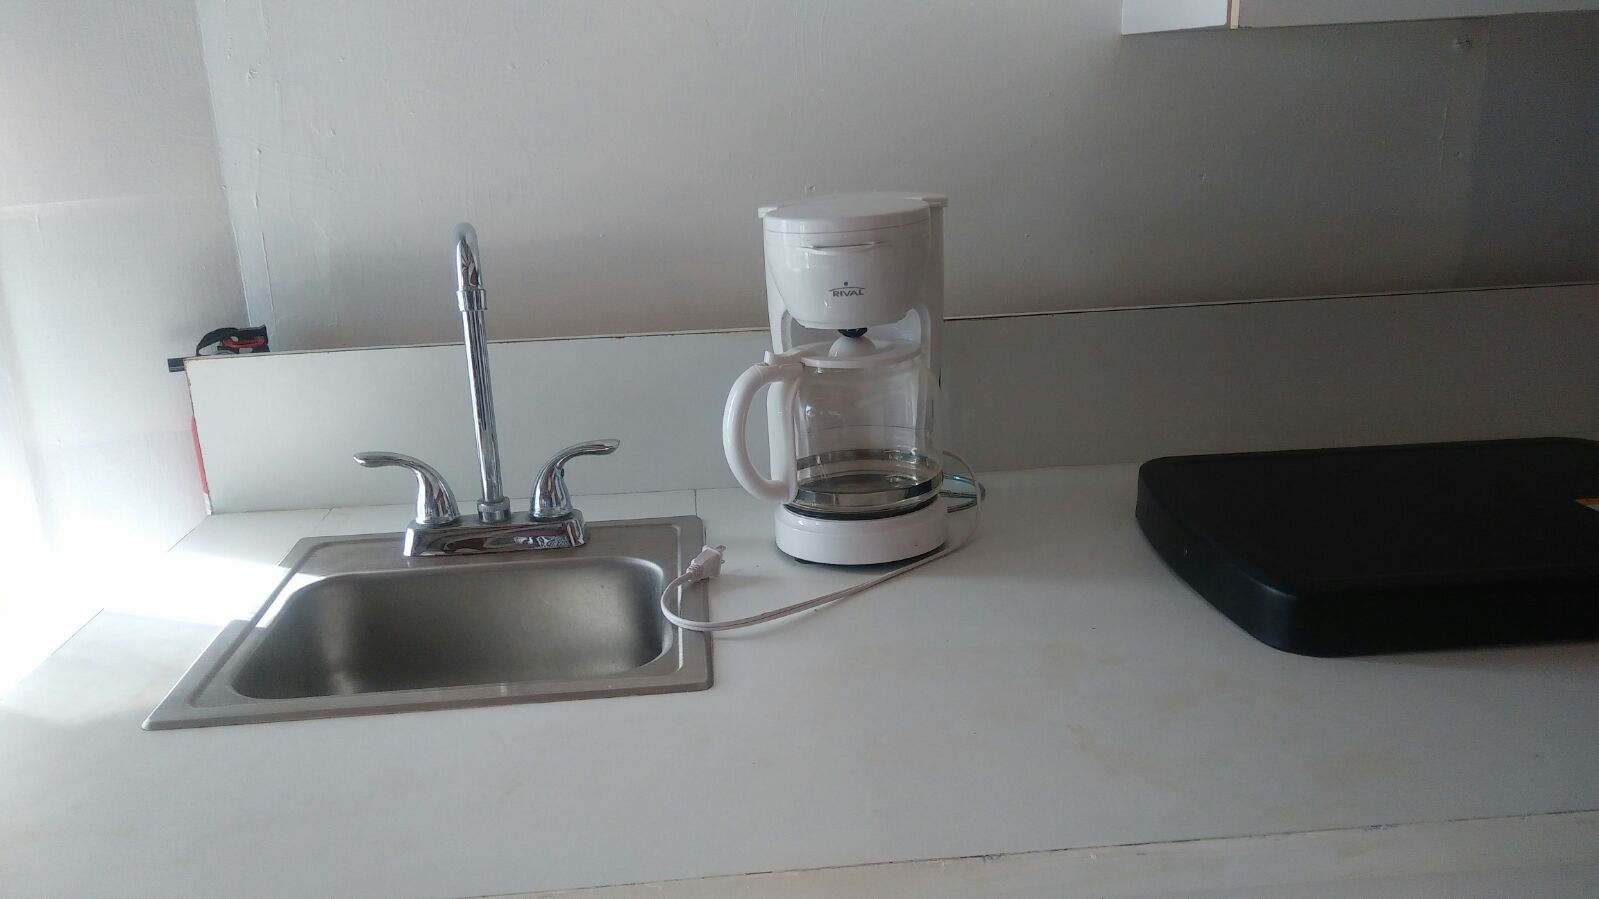 Single coffee maker